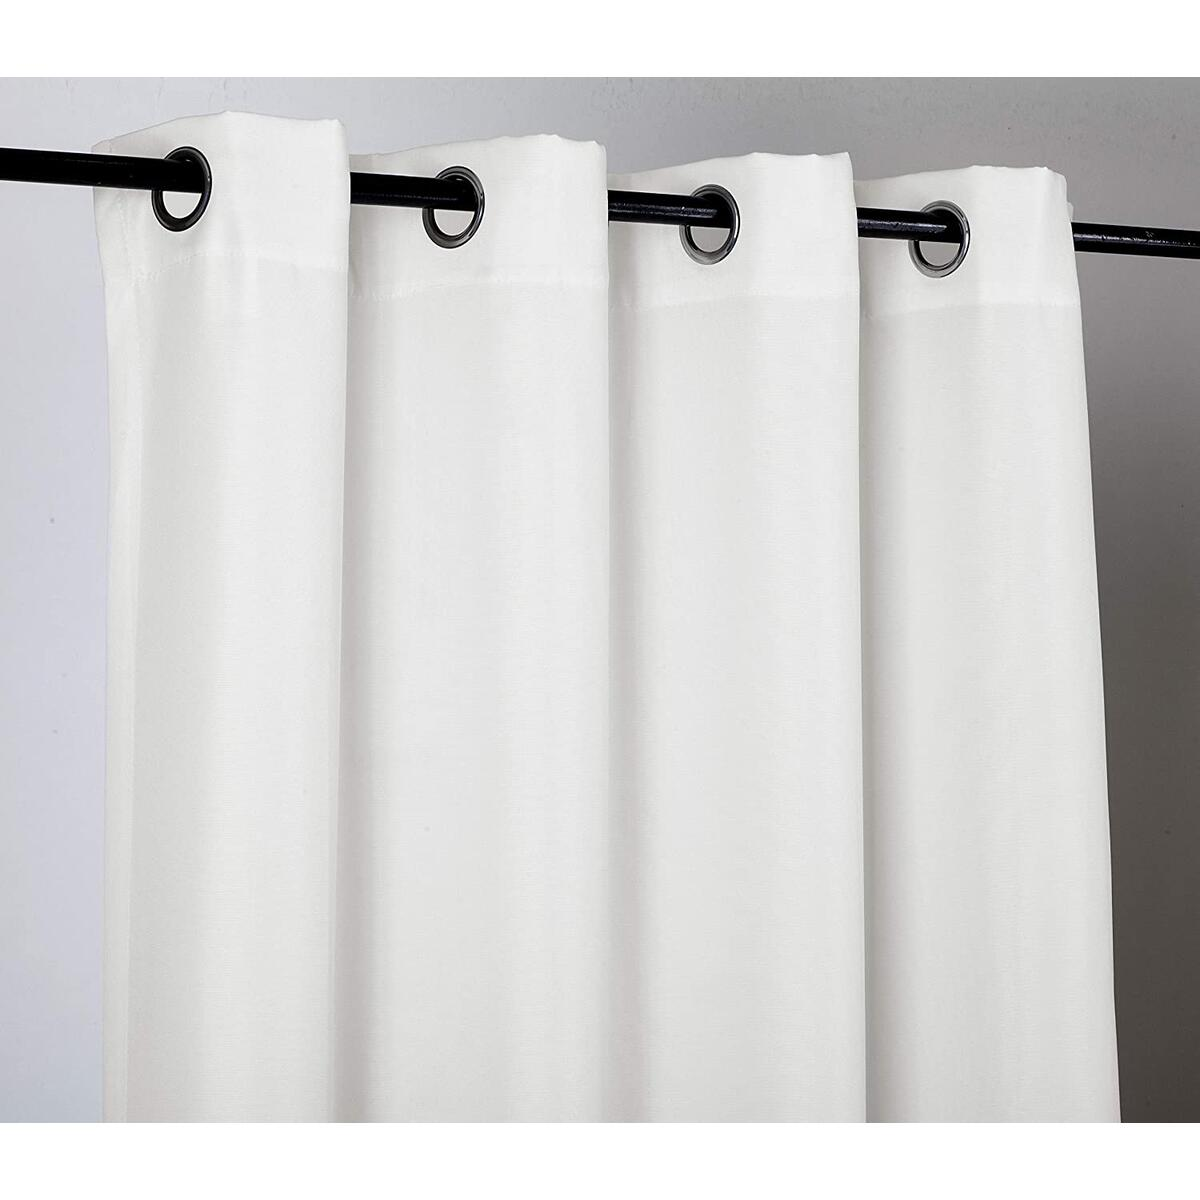 ndoor/Outdoor Solid Cabana Grommet Top Curtain Panel Wide Window Curtain Pair with Grommet Top 2pc 84 95 108 120 inch Window Treatment ( ALL SIZES AND COLORS )